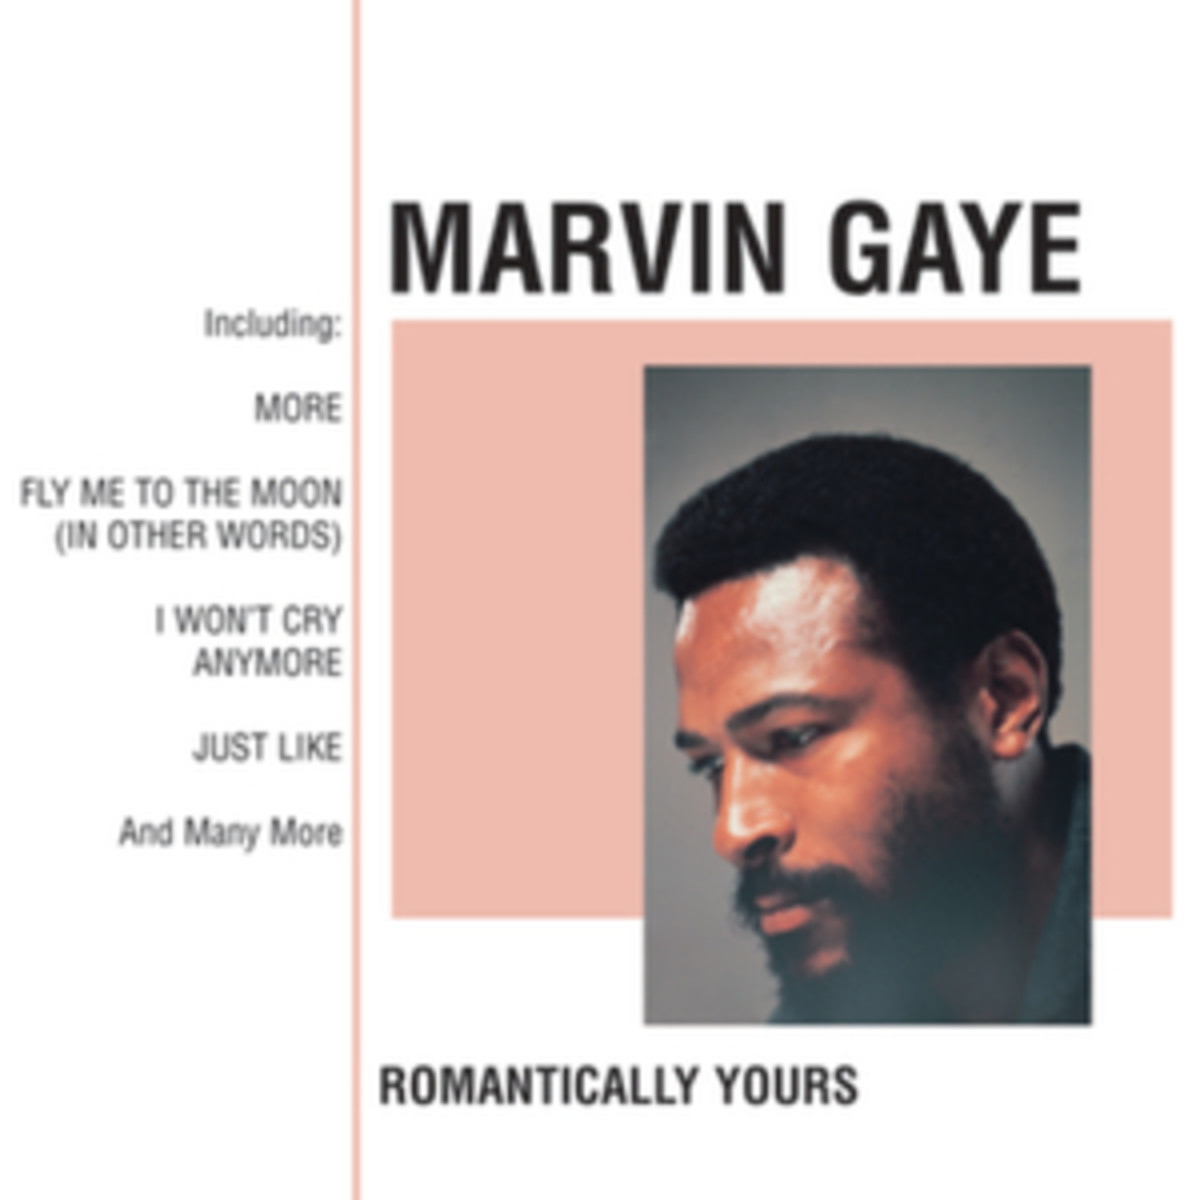 Magical Marvin recorded his version in 1985 for his album Romantically Yours